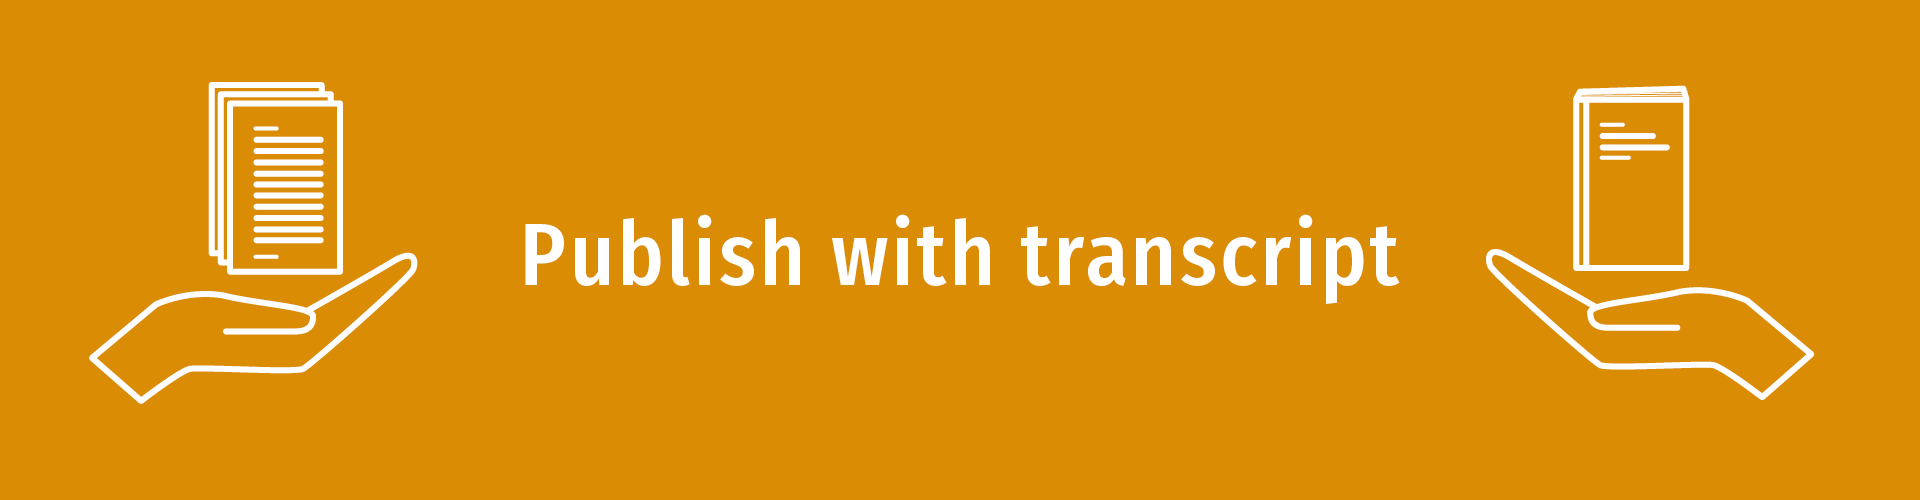 Publish with transcript